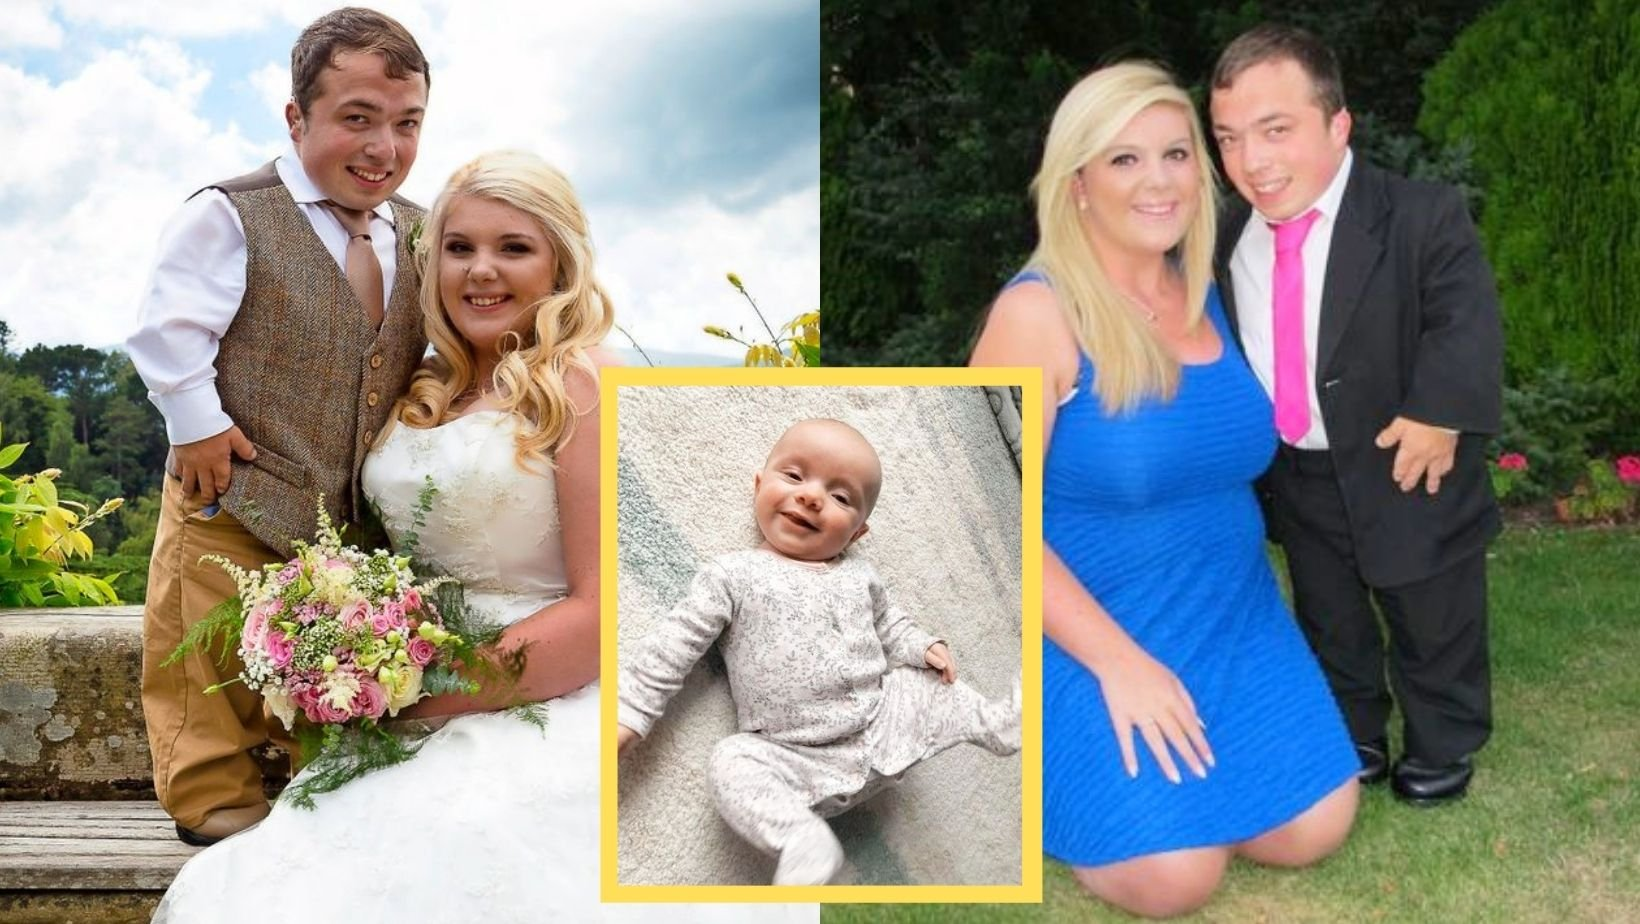 1 81.jpg?resize=412,232 - Woman Marries Boyfriend With Dwarfism Despite Her Family's Disapproval Of Their Relationship